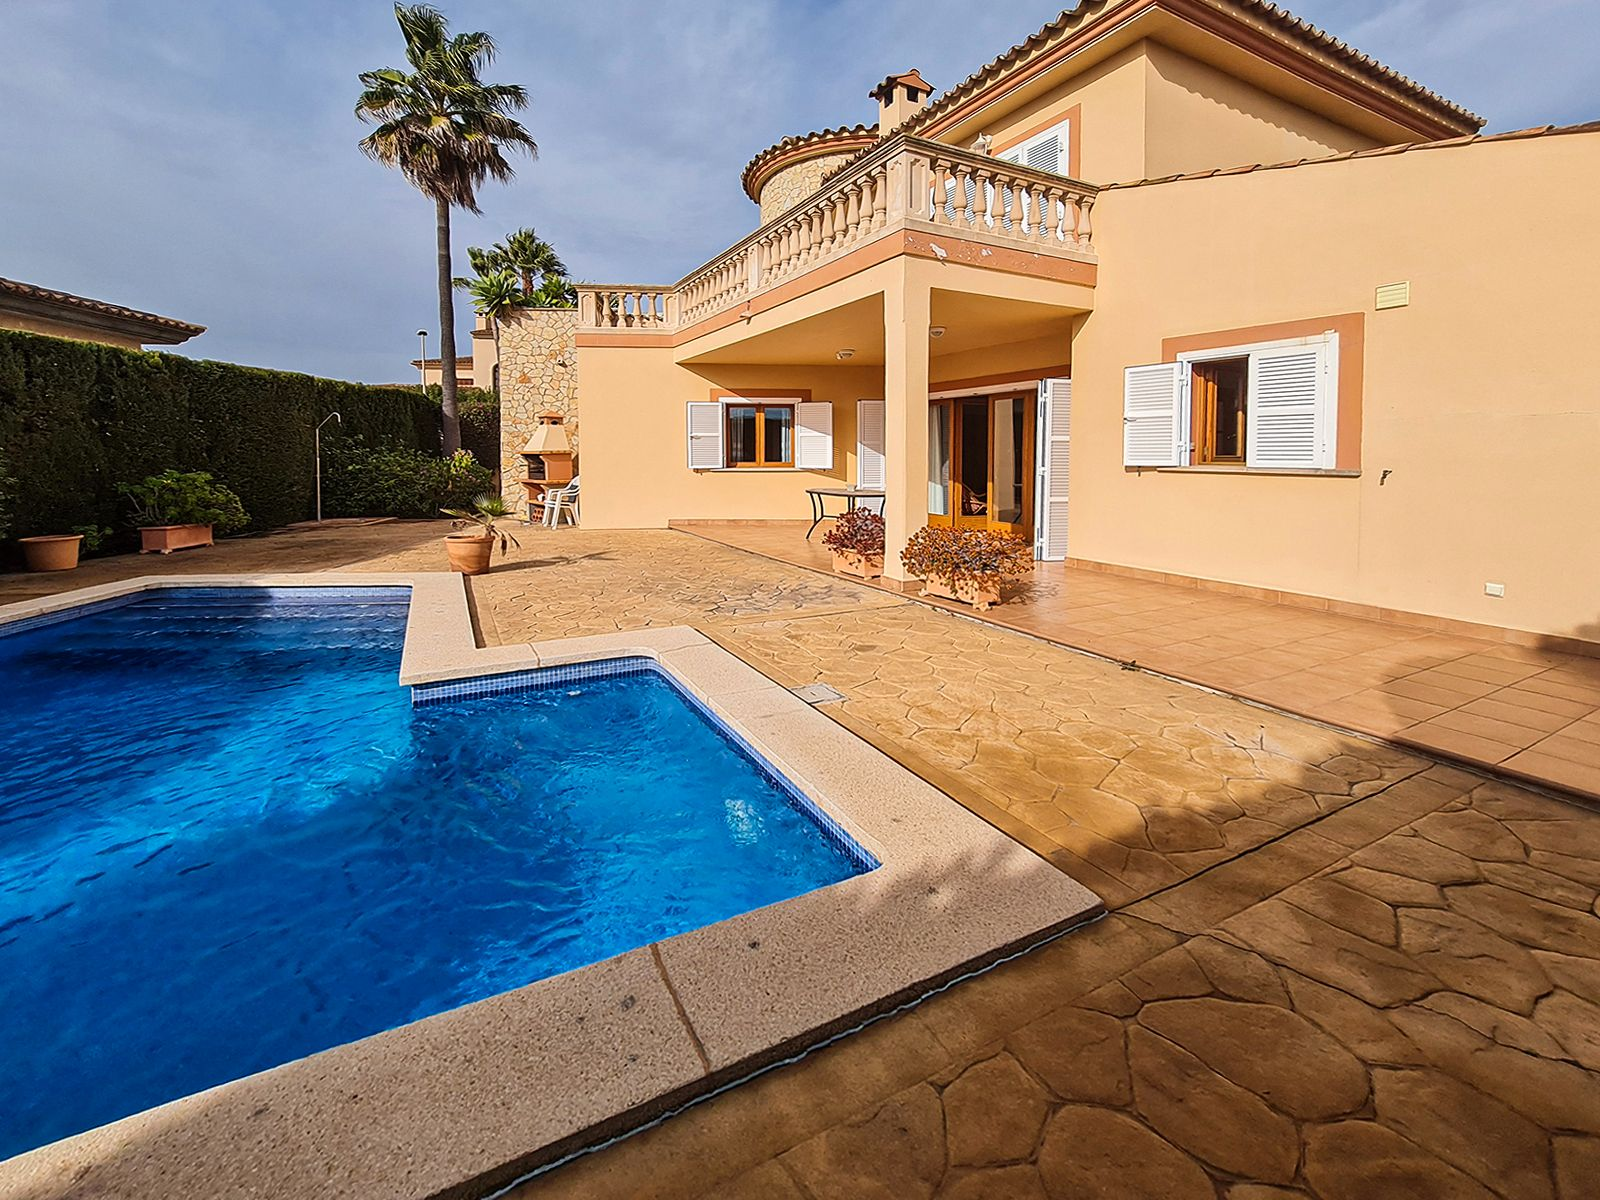 Semi detached house in Son Servera. Bonito chalet con piscina en cala bona